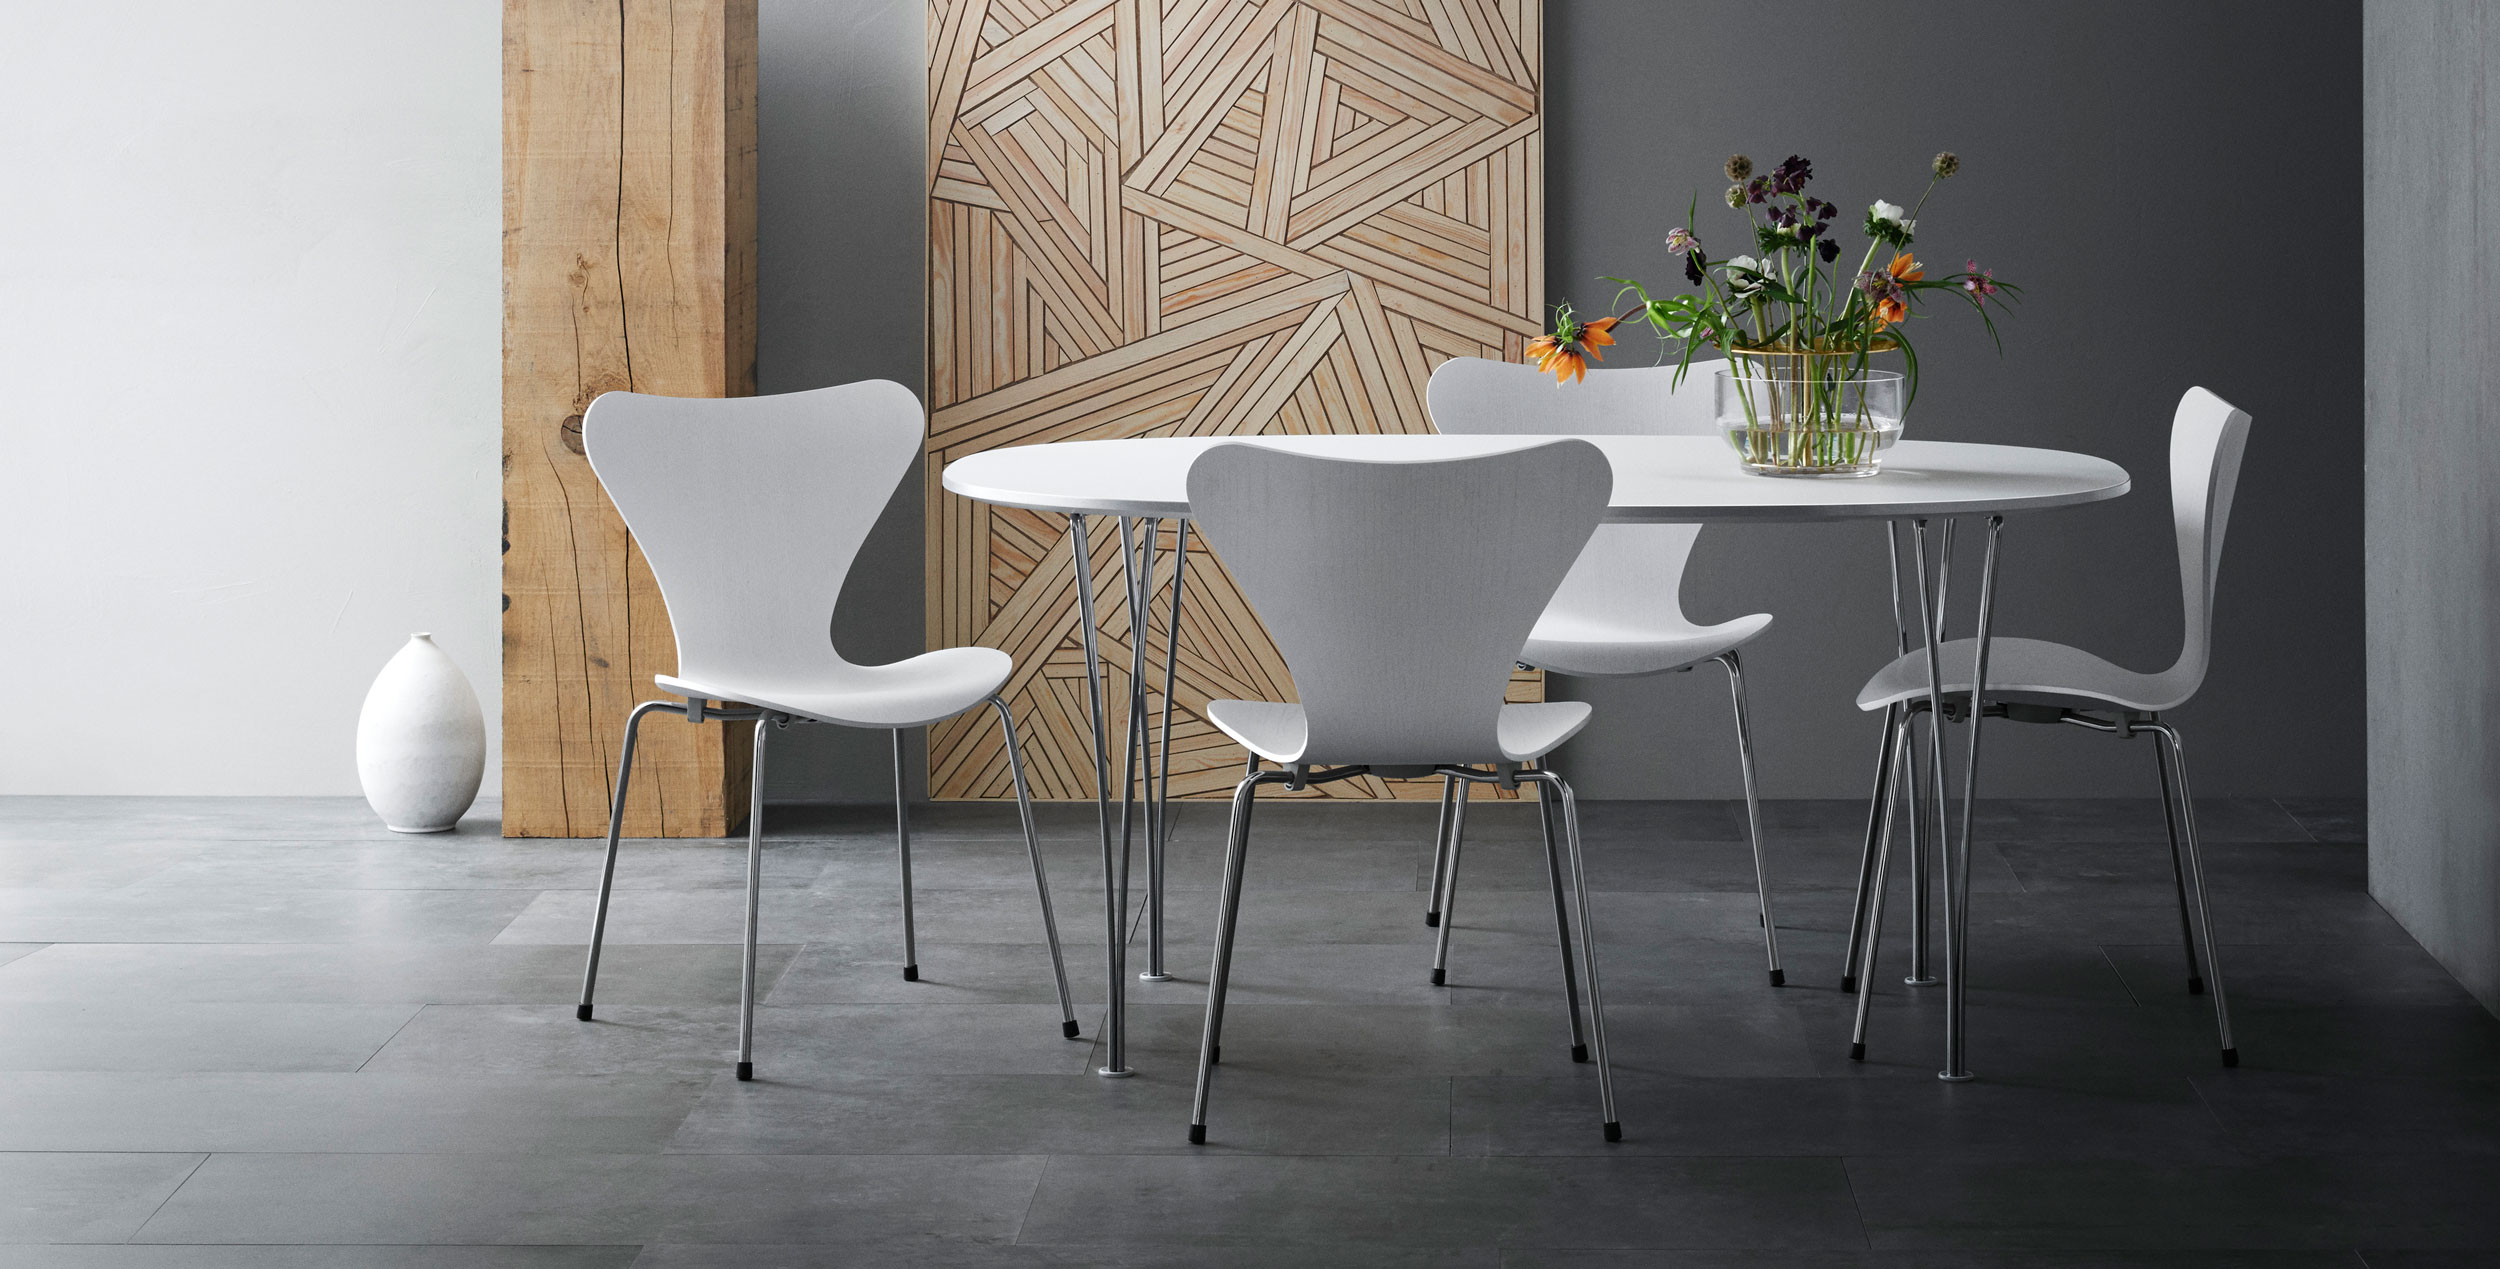 Fritz Hansen Series 7 Chairs & Super Elliptical Table